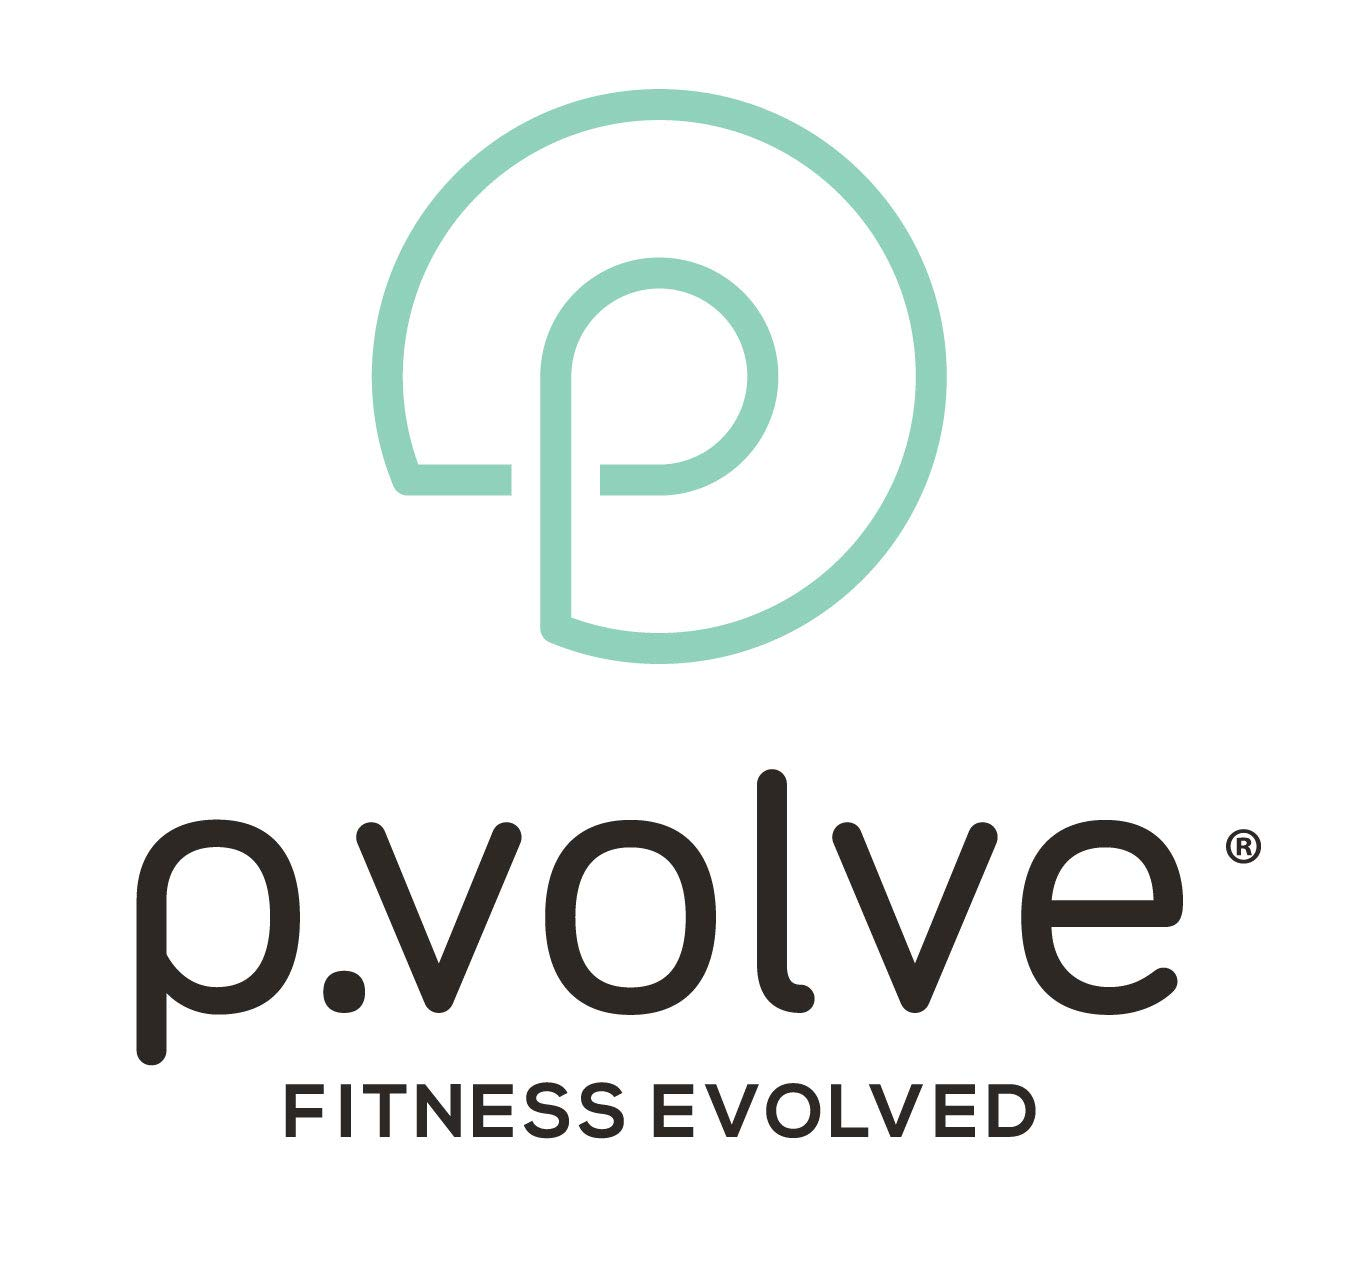 P.volve Full Body Workout Premium Kit - Complete Home Workout Equipment Includes P.Ball & P.Band Set - Women & Men's Strength Training Exercise Ball & Resistance Bands for a Fit and Sculpted Body